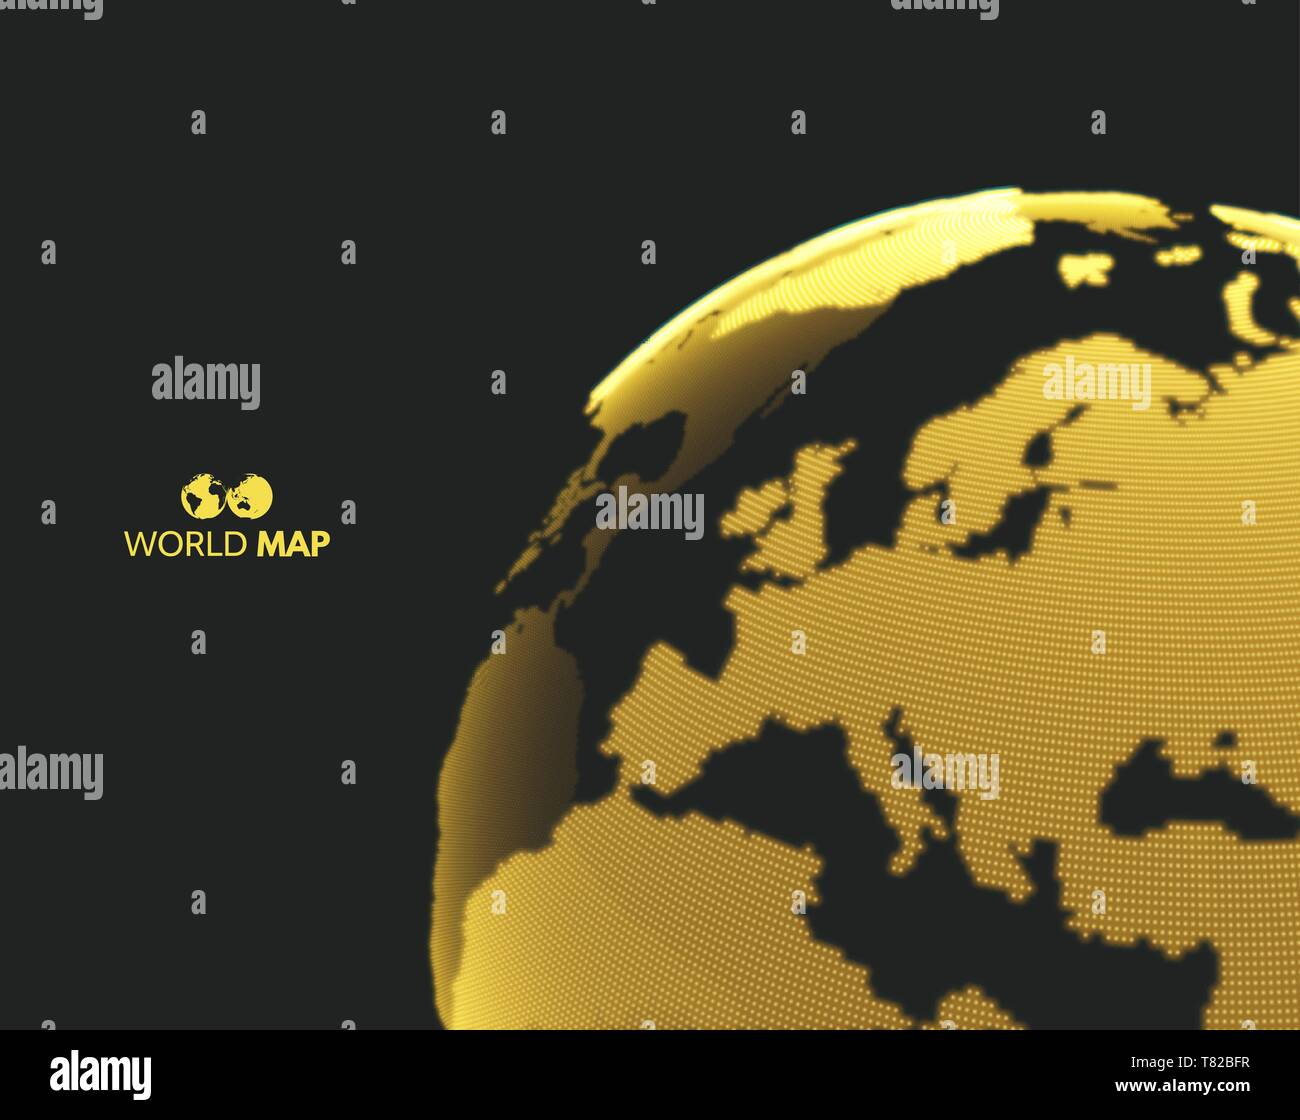 Africa and Europe. Earth globe. Global business marketing concept. Dotted style. Design for education, science, web presentations. - Stock Vector